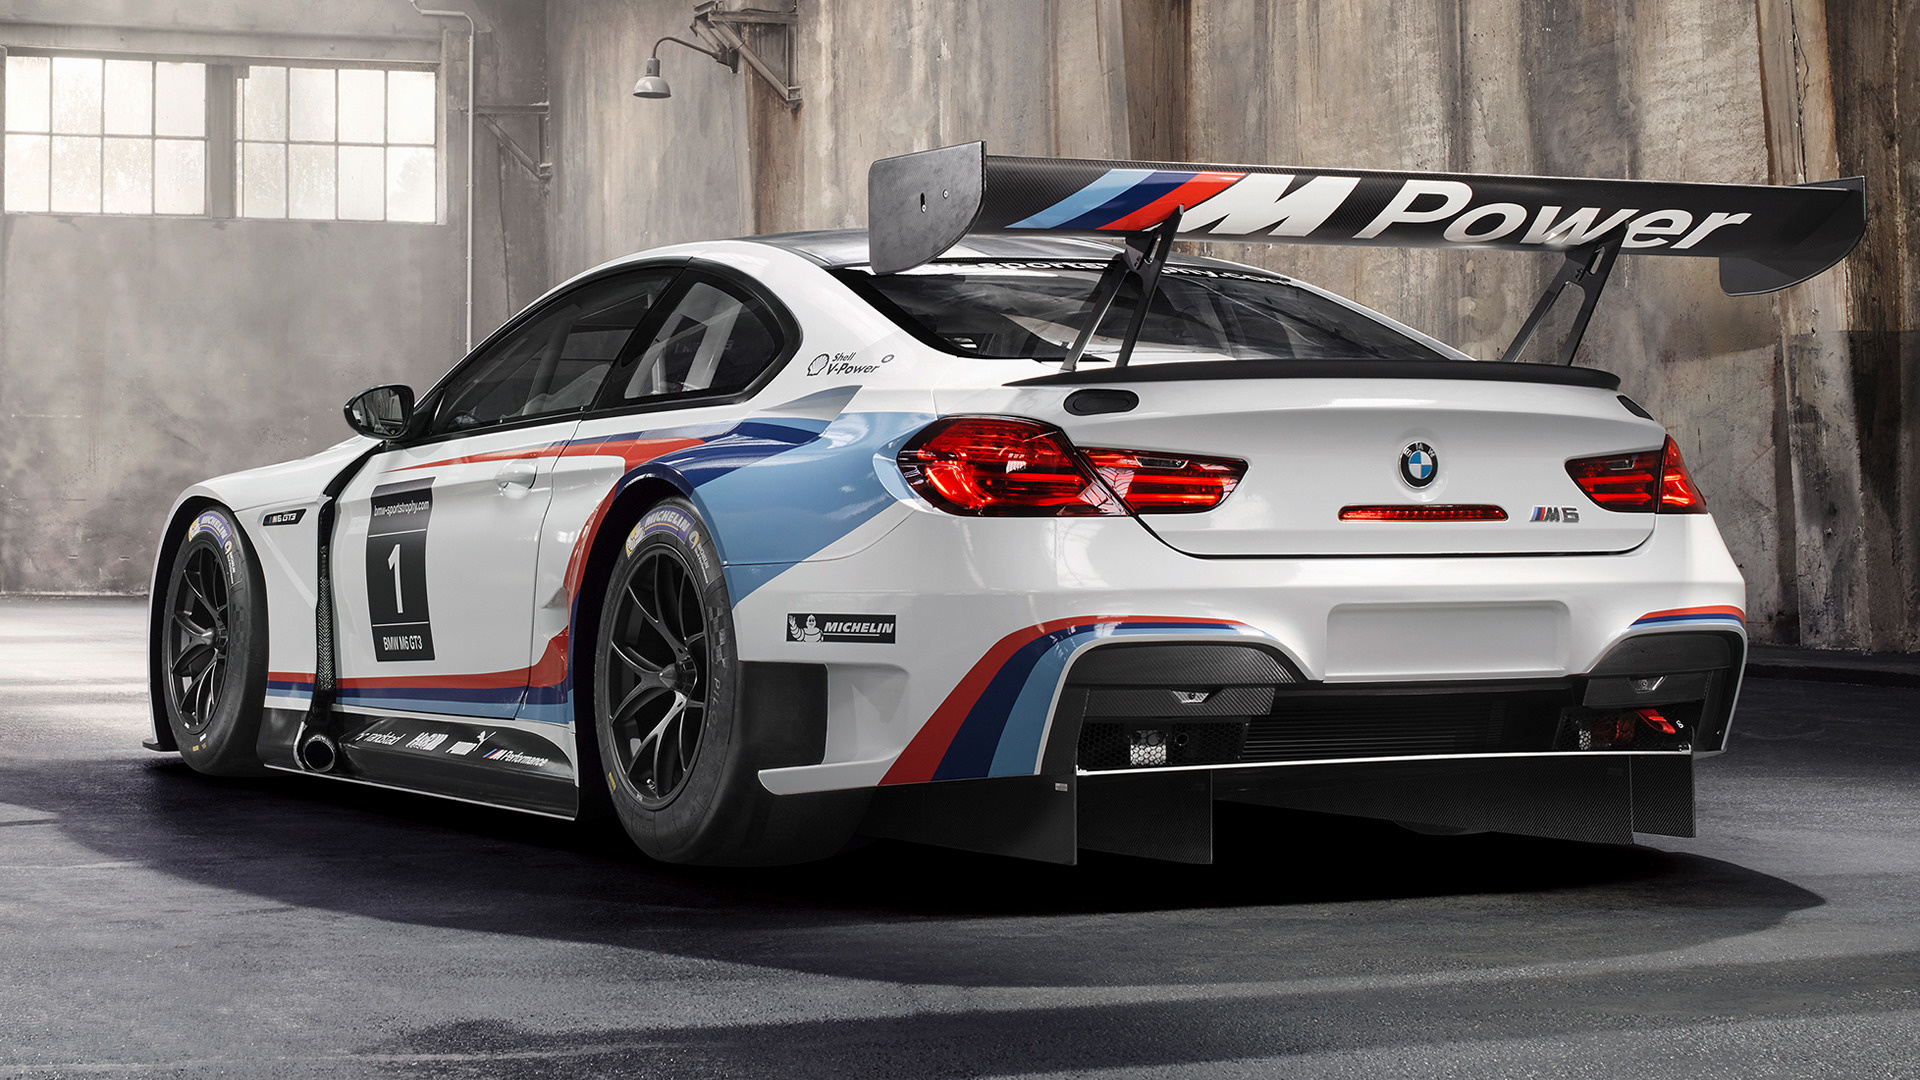 bmw m6 gt3 race gt m4 hd wallpapers racecar kit body australia competition racing championship enter frankfurt coupe audi races